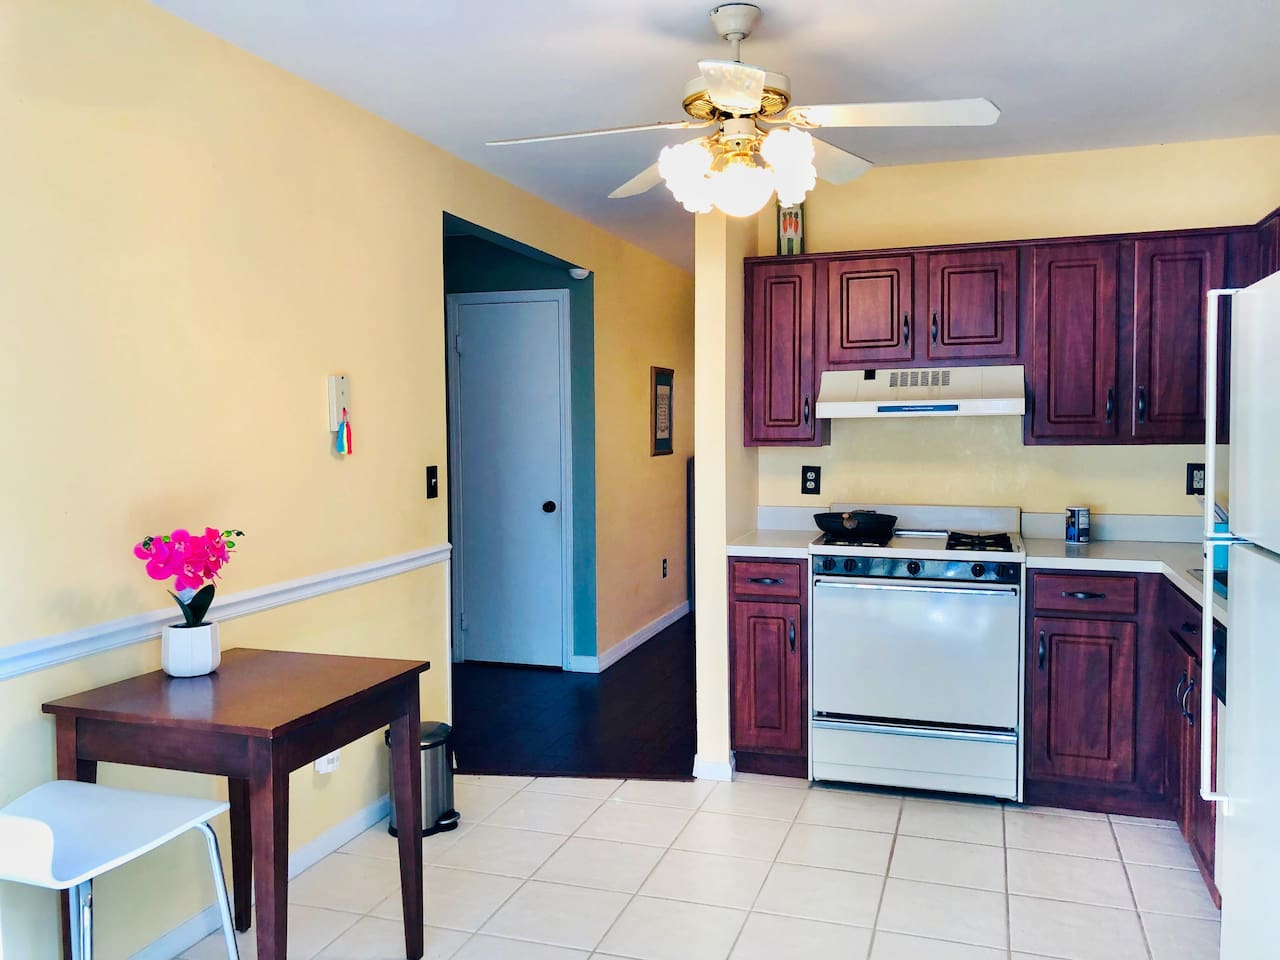 This townhouse is at the best community close to the center of city. Full cook kitchen,with microwave and toaster etc